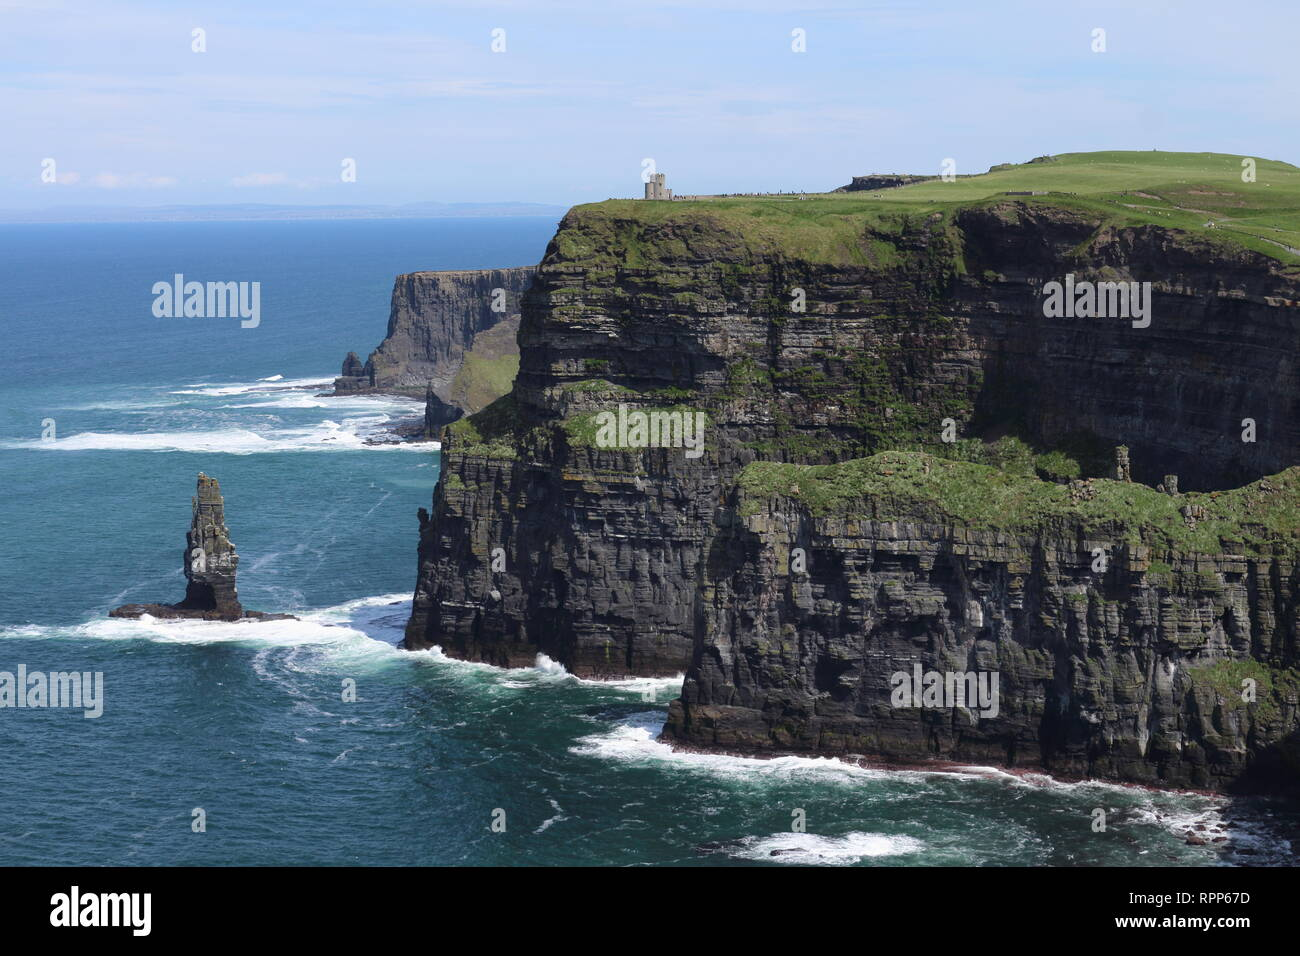 Ireland Wild Atlantic Way - Stock Image